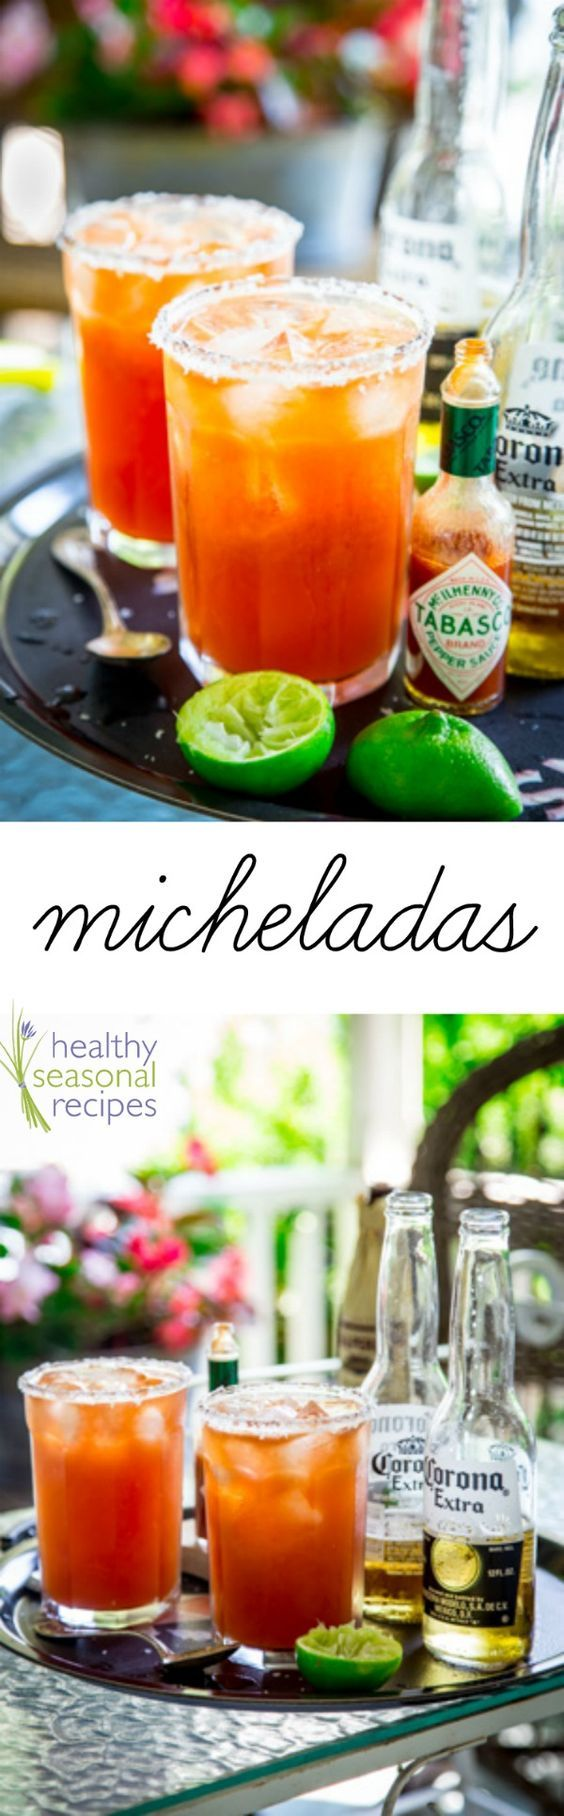 Blog post at Healthy Seasonal Recipes : Here's how to make killer micheladas, also known as red beer. It's a savory beer drink, served with ice, lime, hot sauce and tomato juic[..]